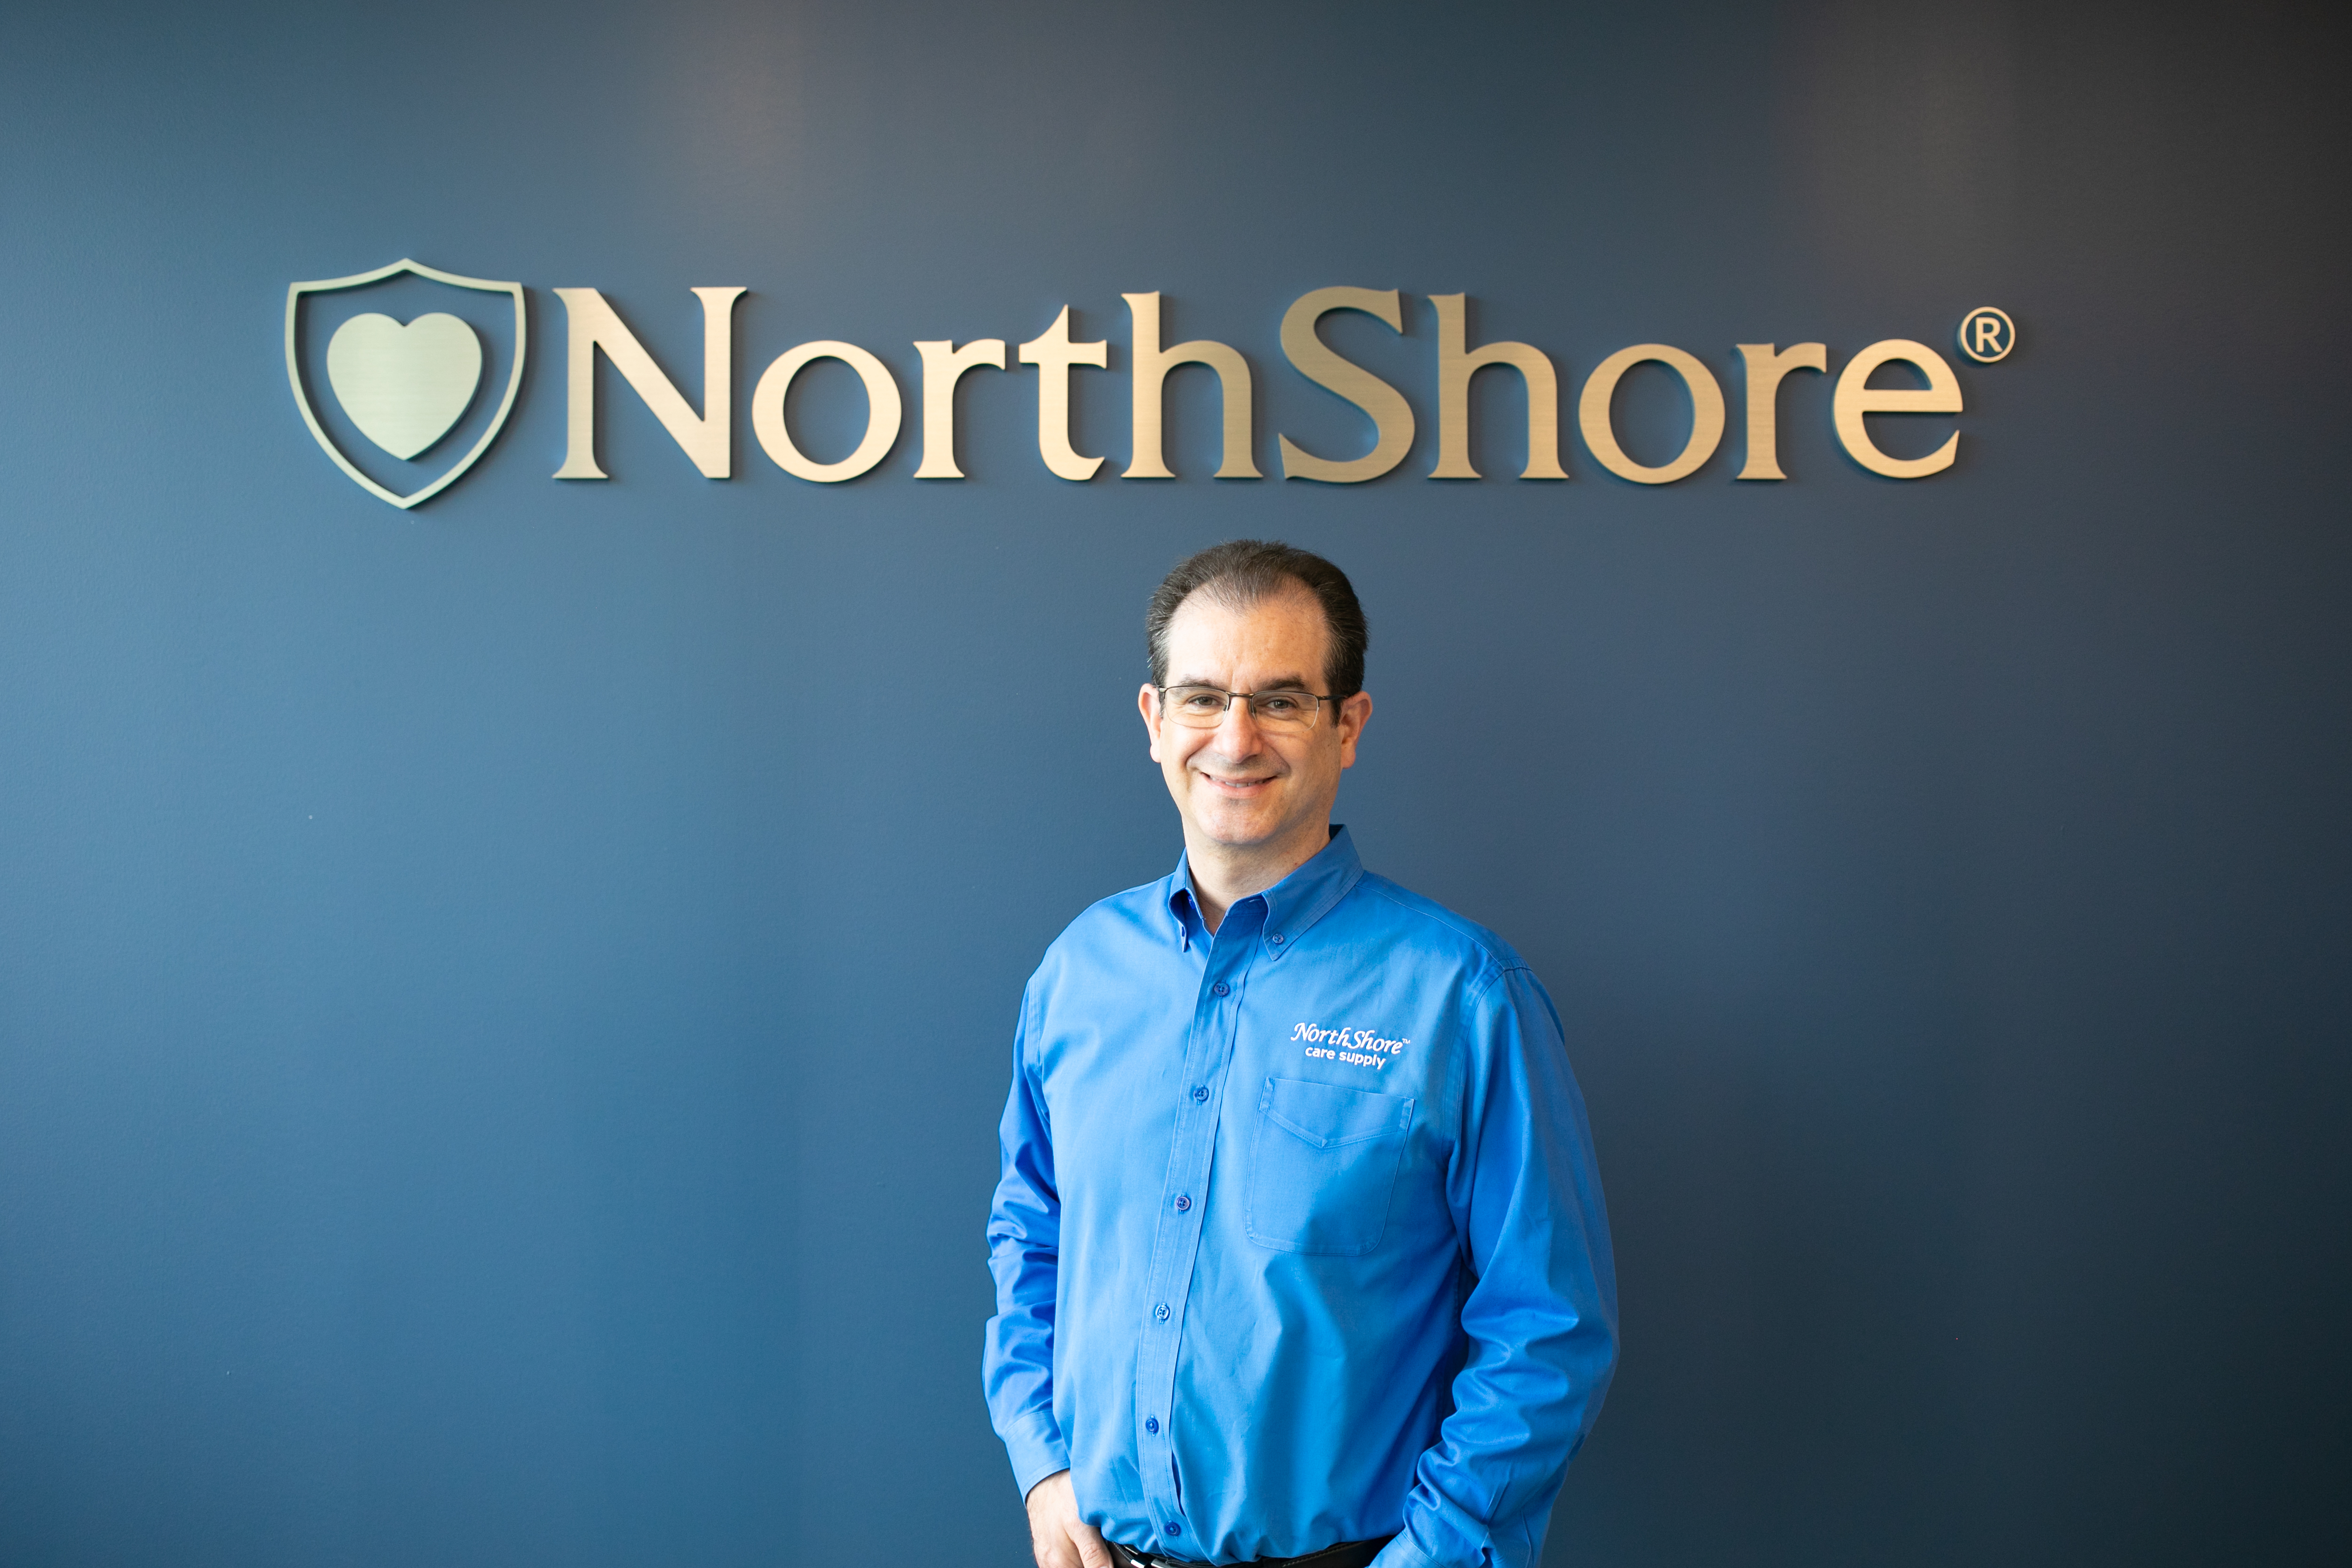 Founder, Adam Greenberg in front of NorthShore interior sign